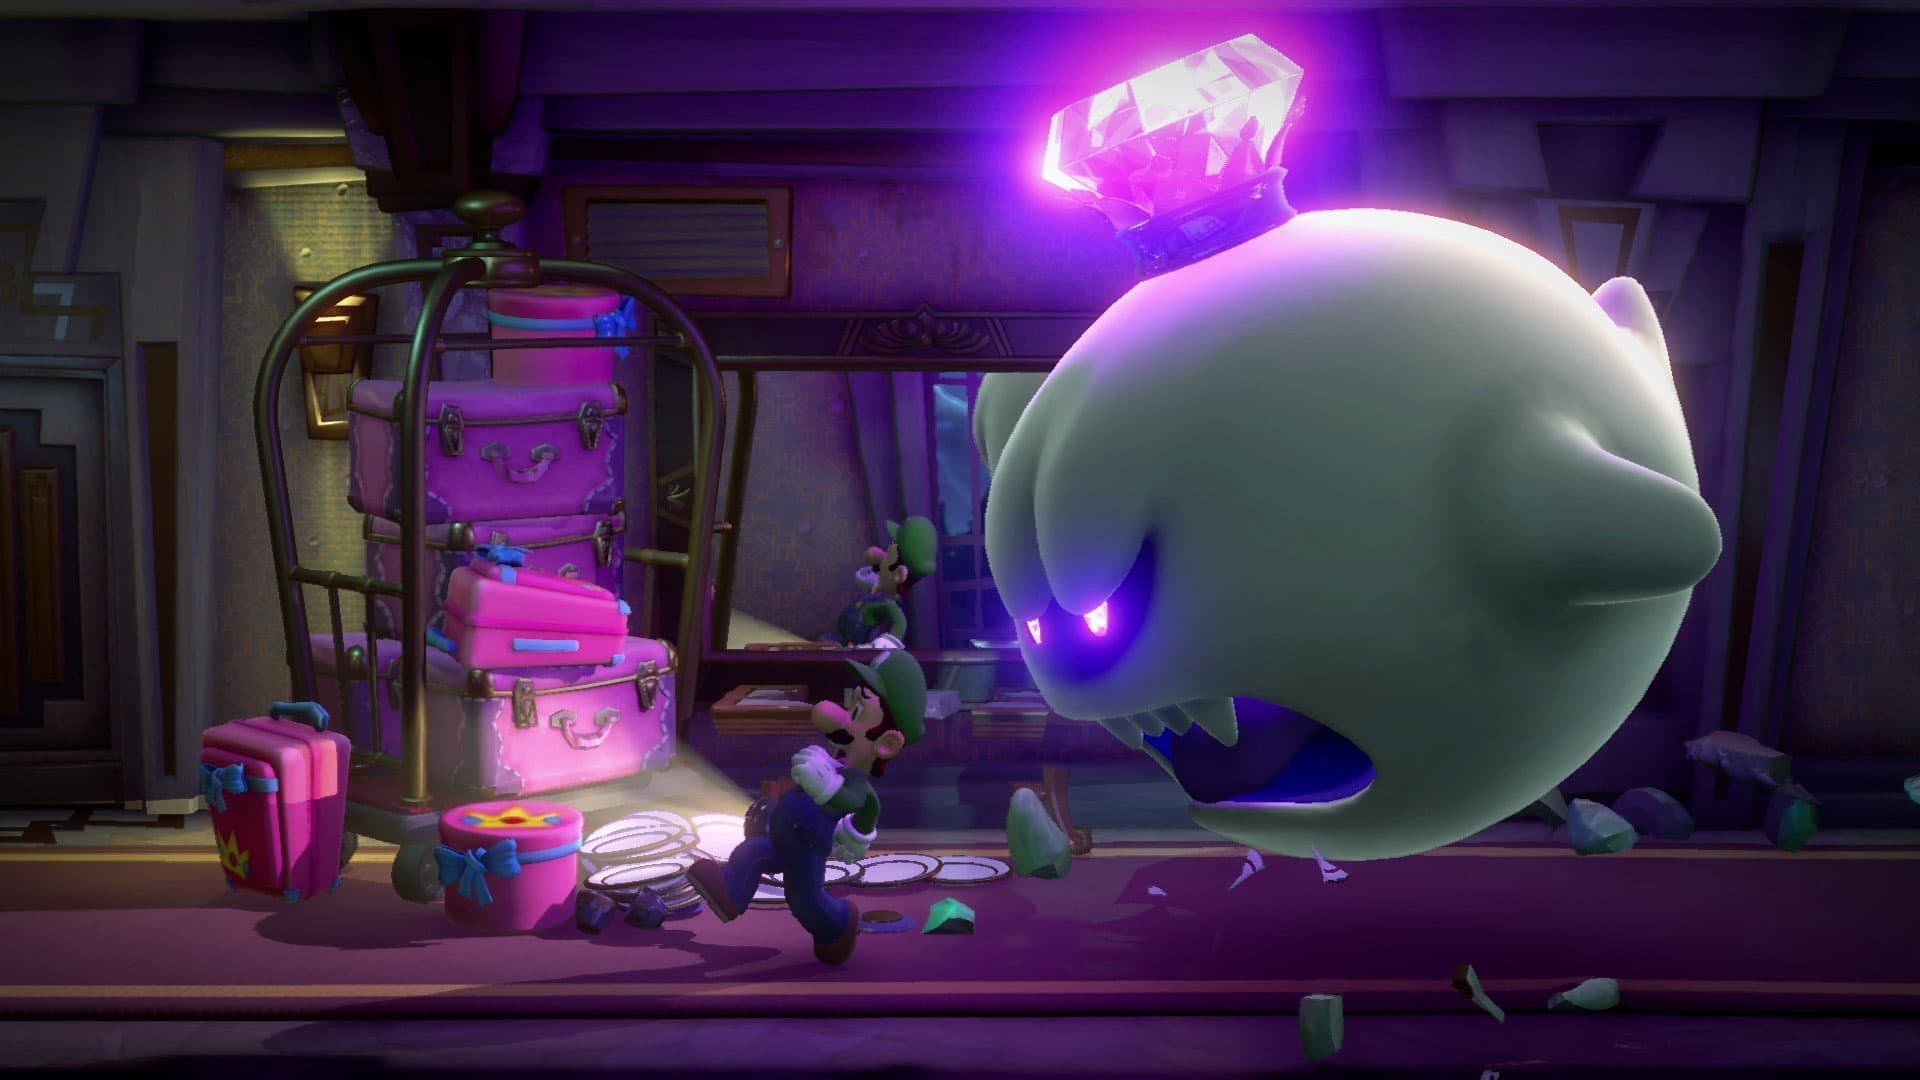 Luigi's Mansion 3 gets confirmed release date from Nintendo.